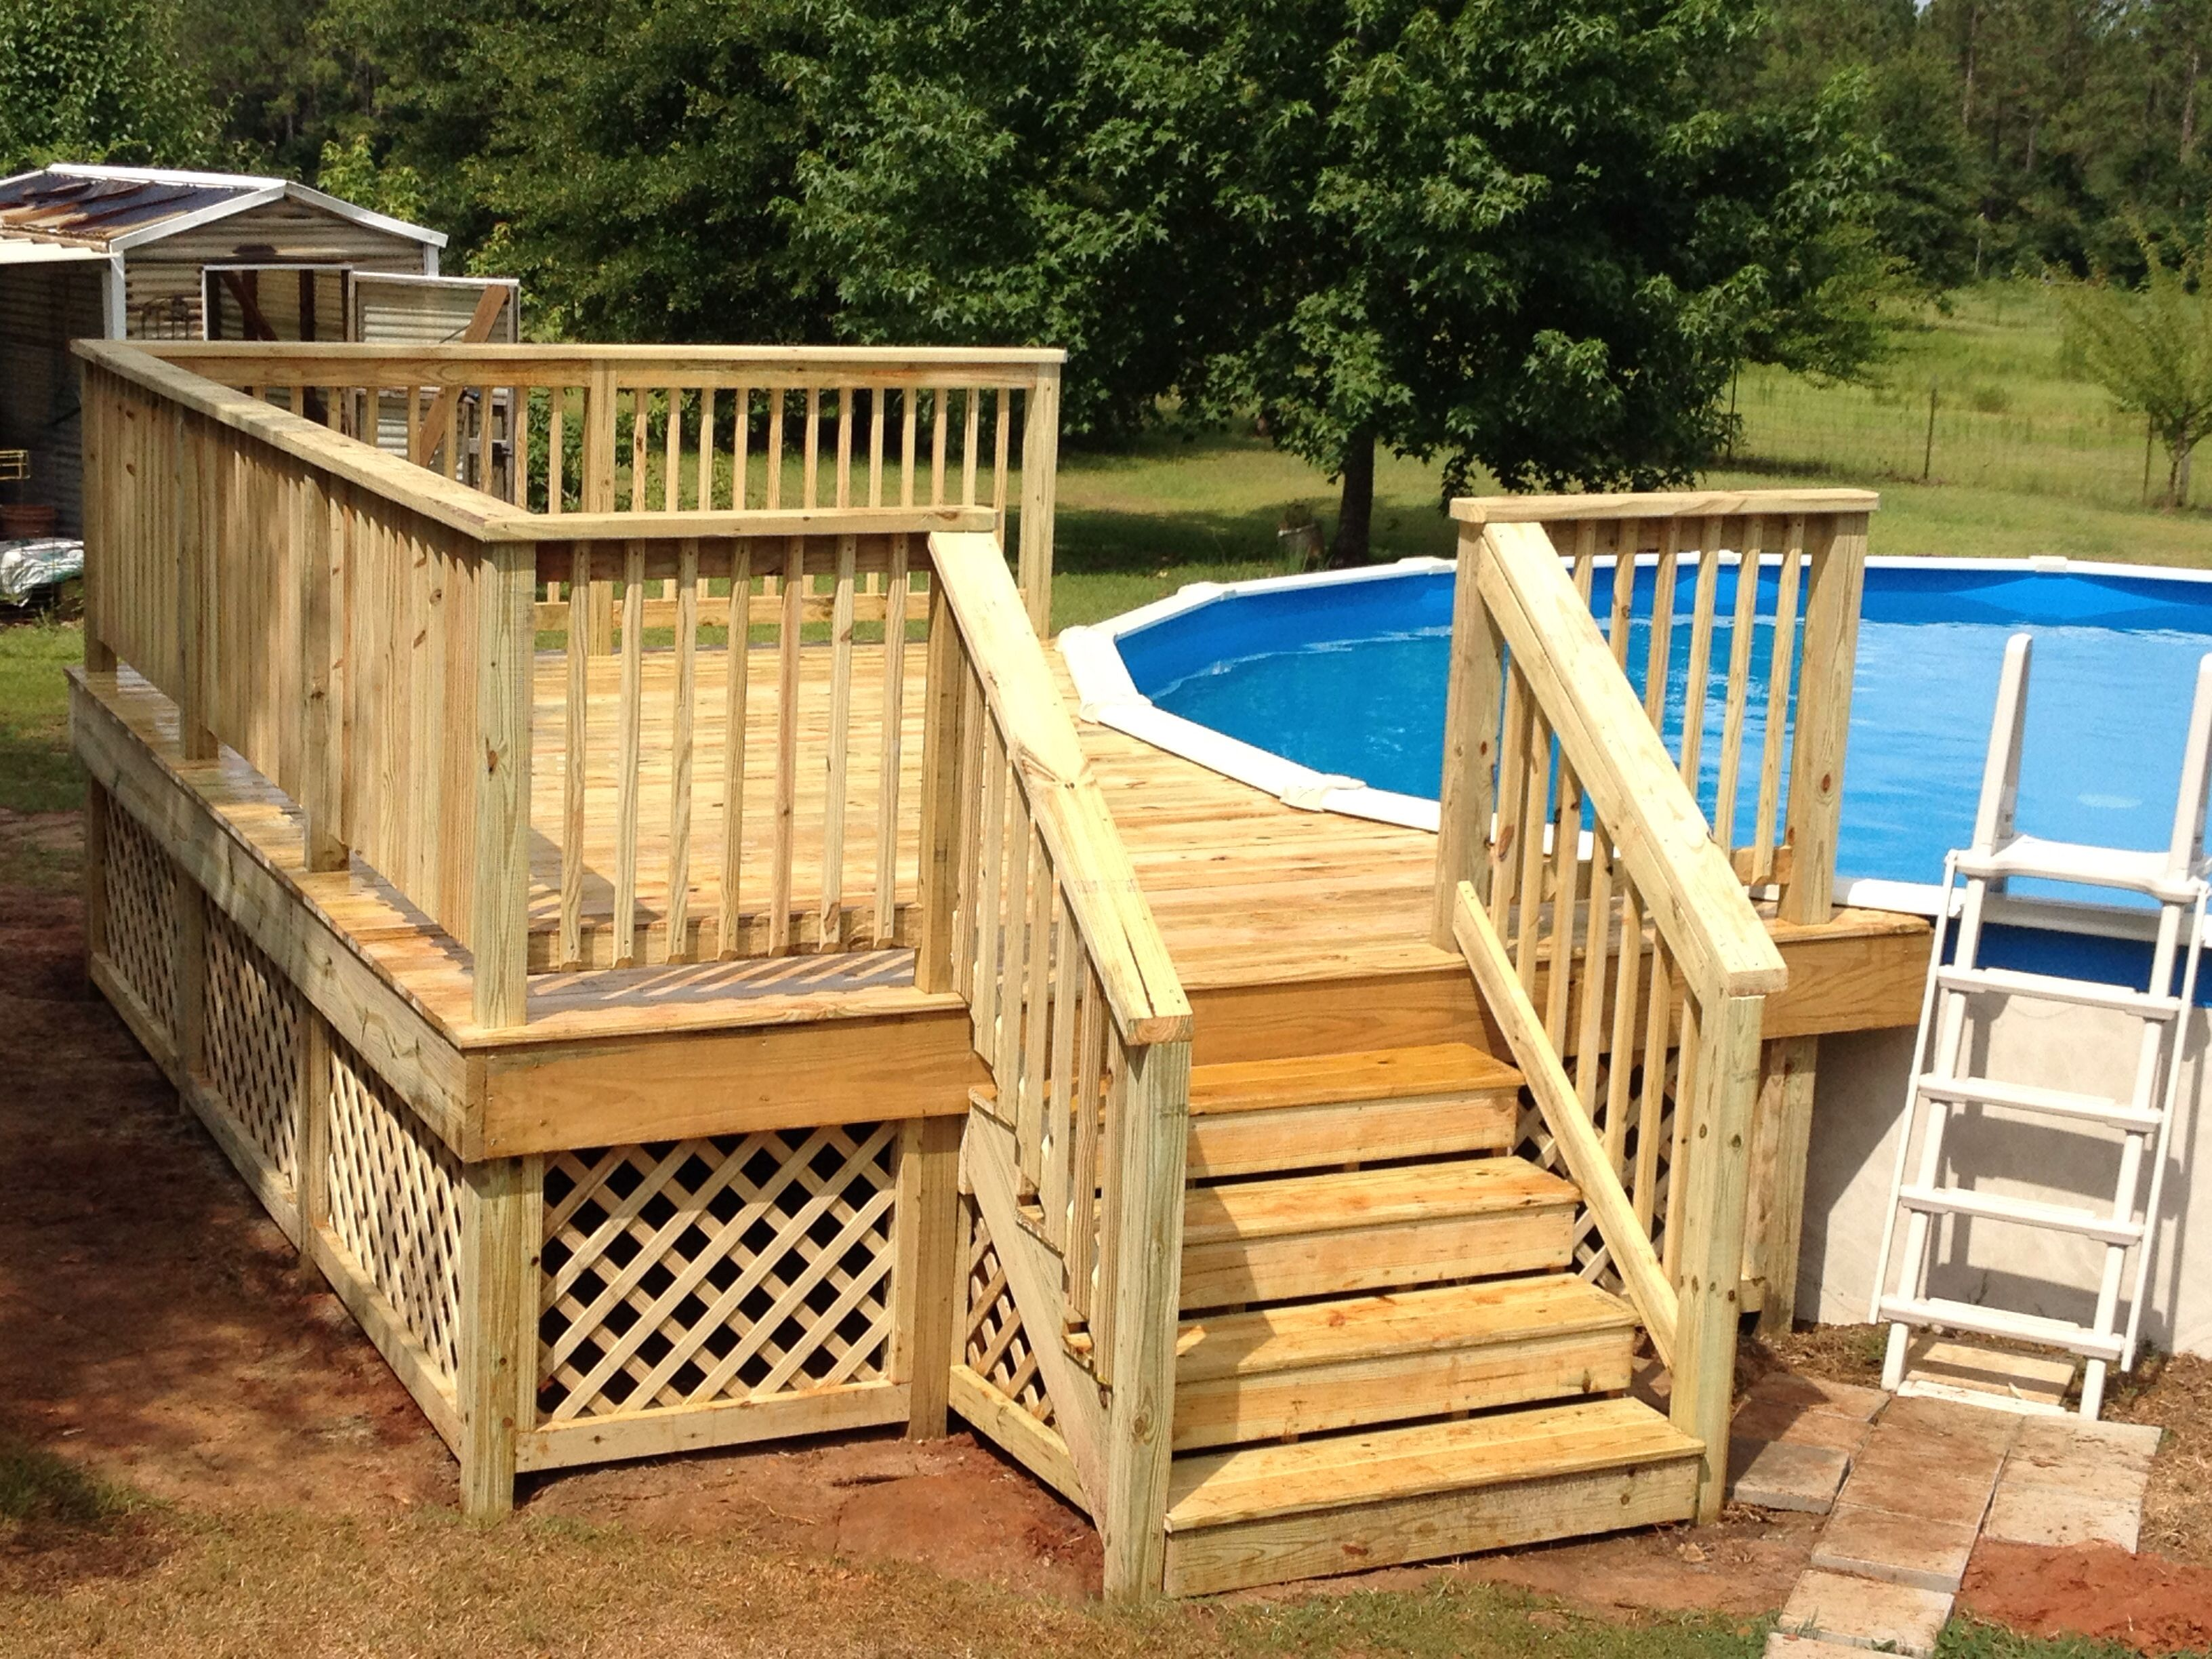 12x16 deck on round pool | My projects | Pinterest | Decking ...